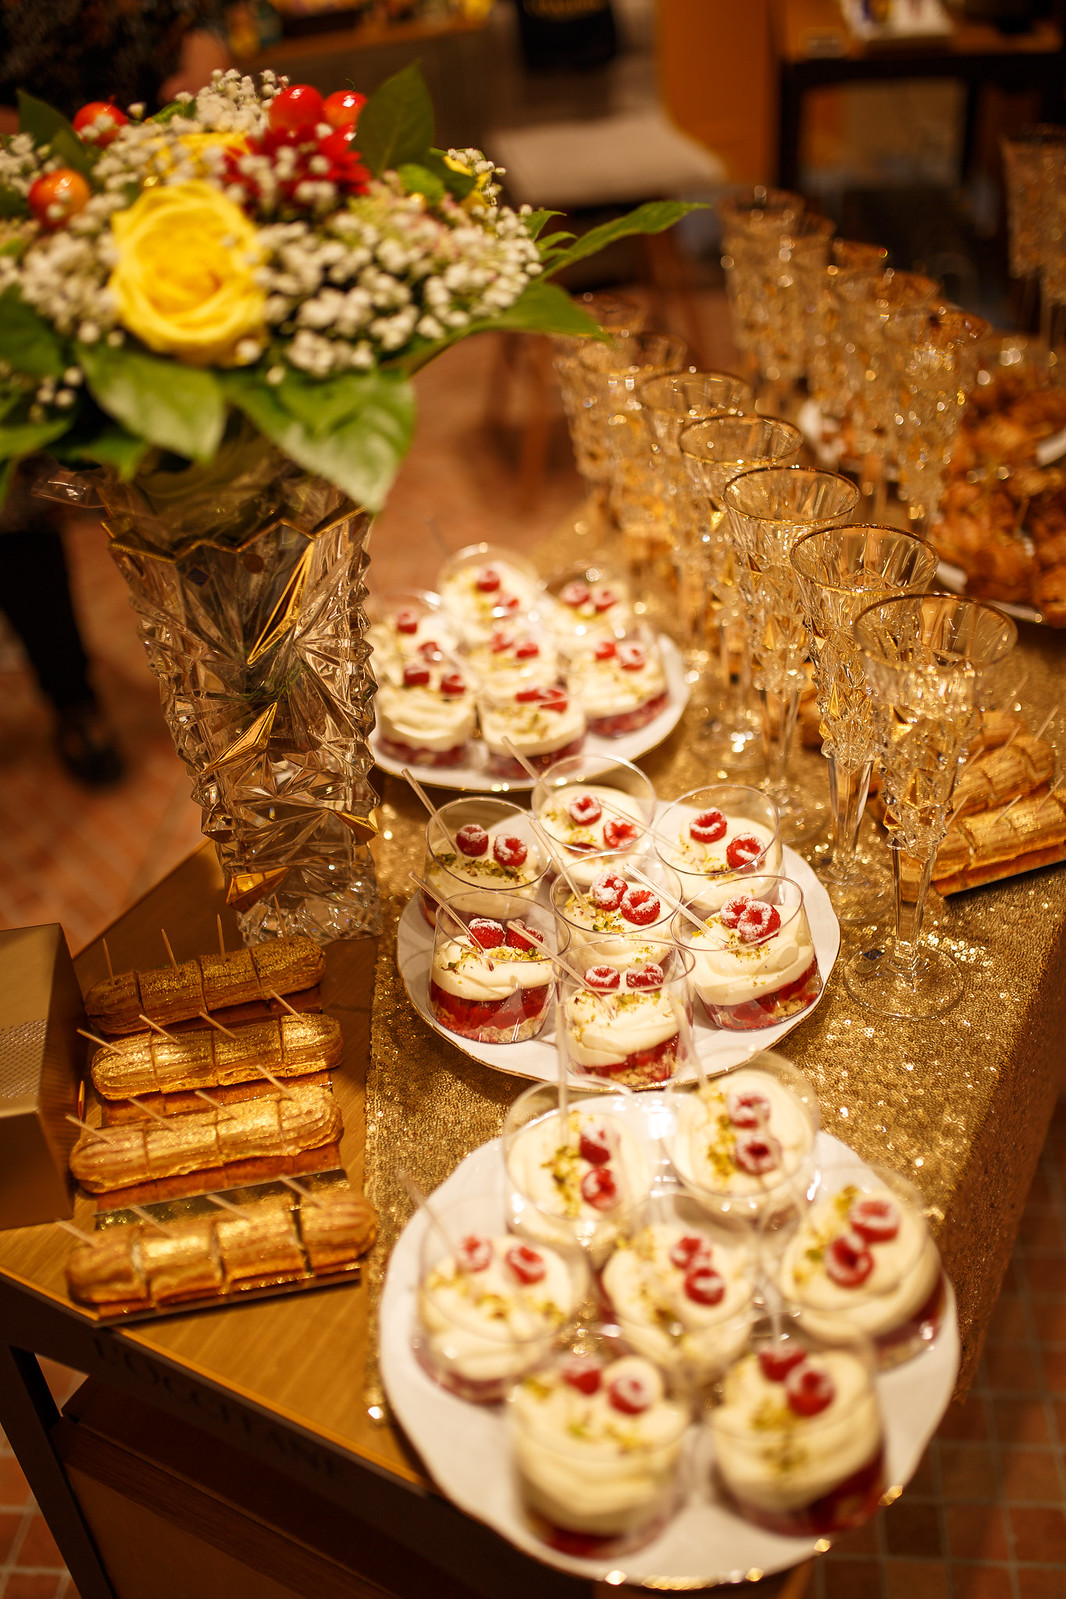 Loccitane blogger event